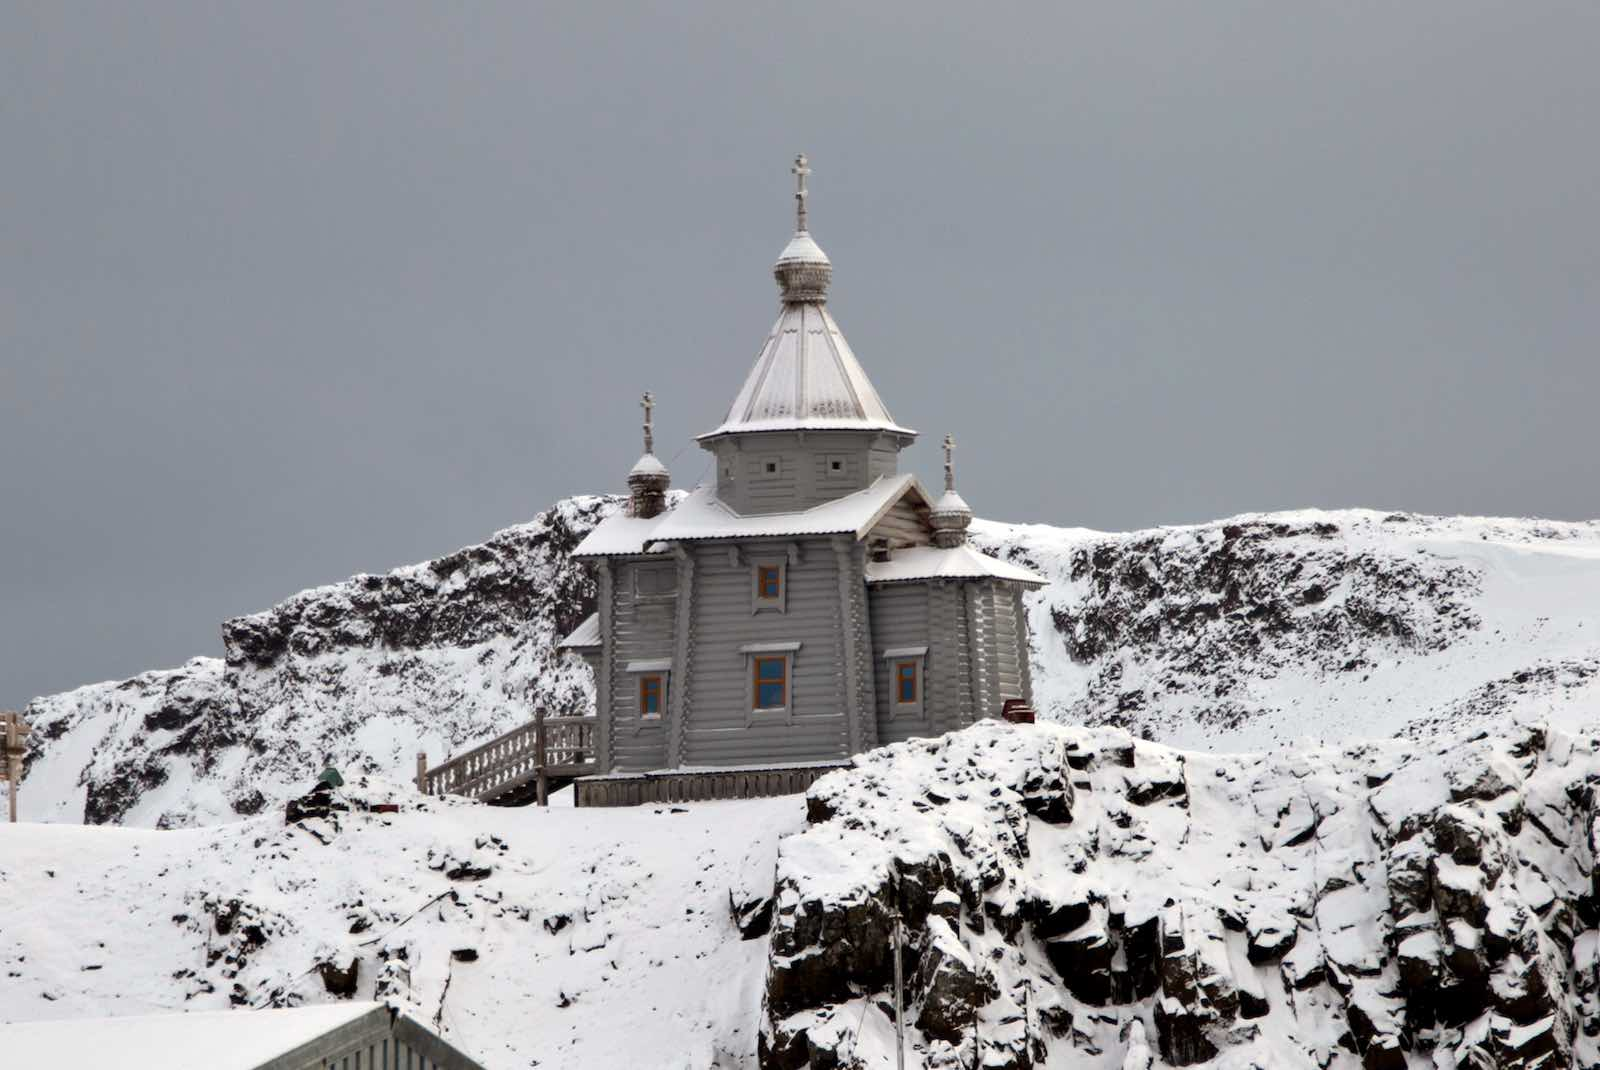 The Orthodox Church in the Russian Bellingshausen Station in Antarctica, photographed in 2014 (Vanderlei Almeida/AFP/Getty Images)